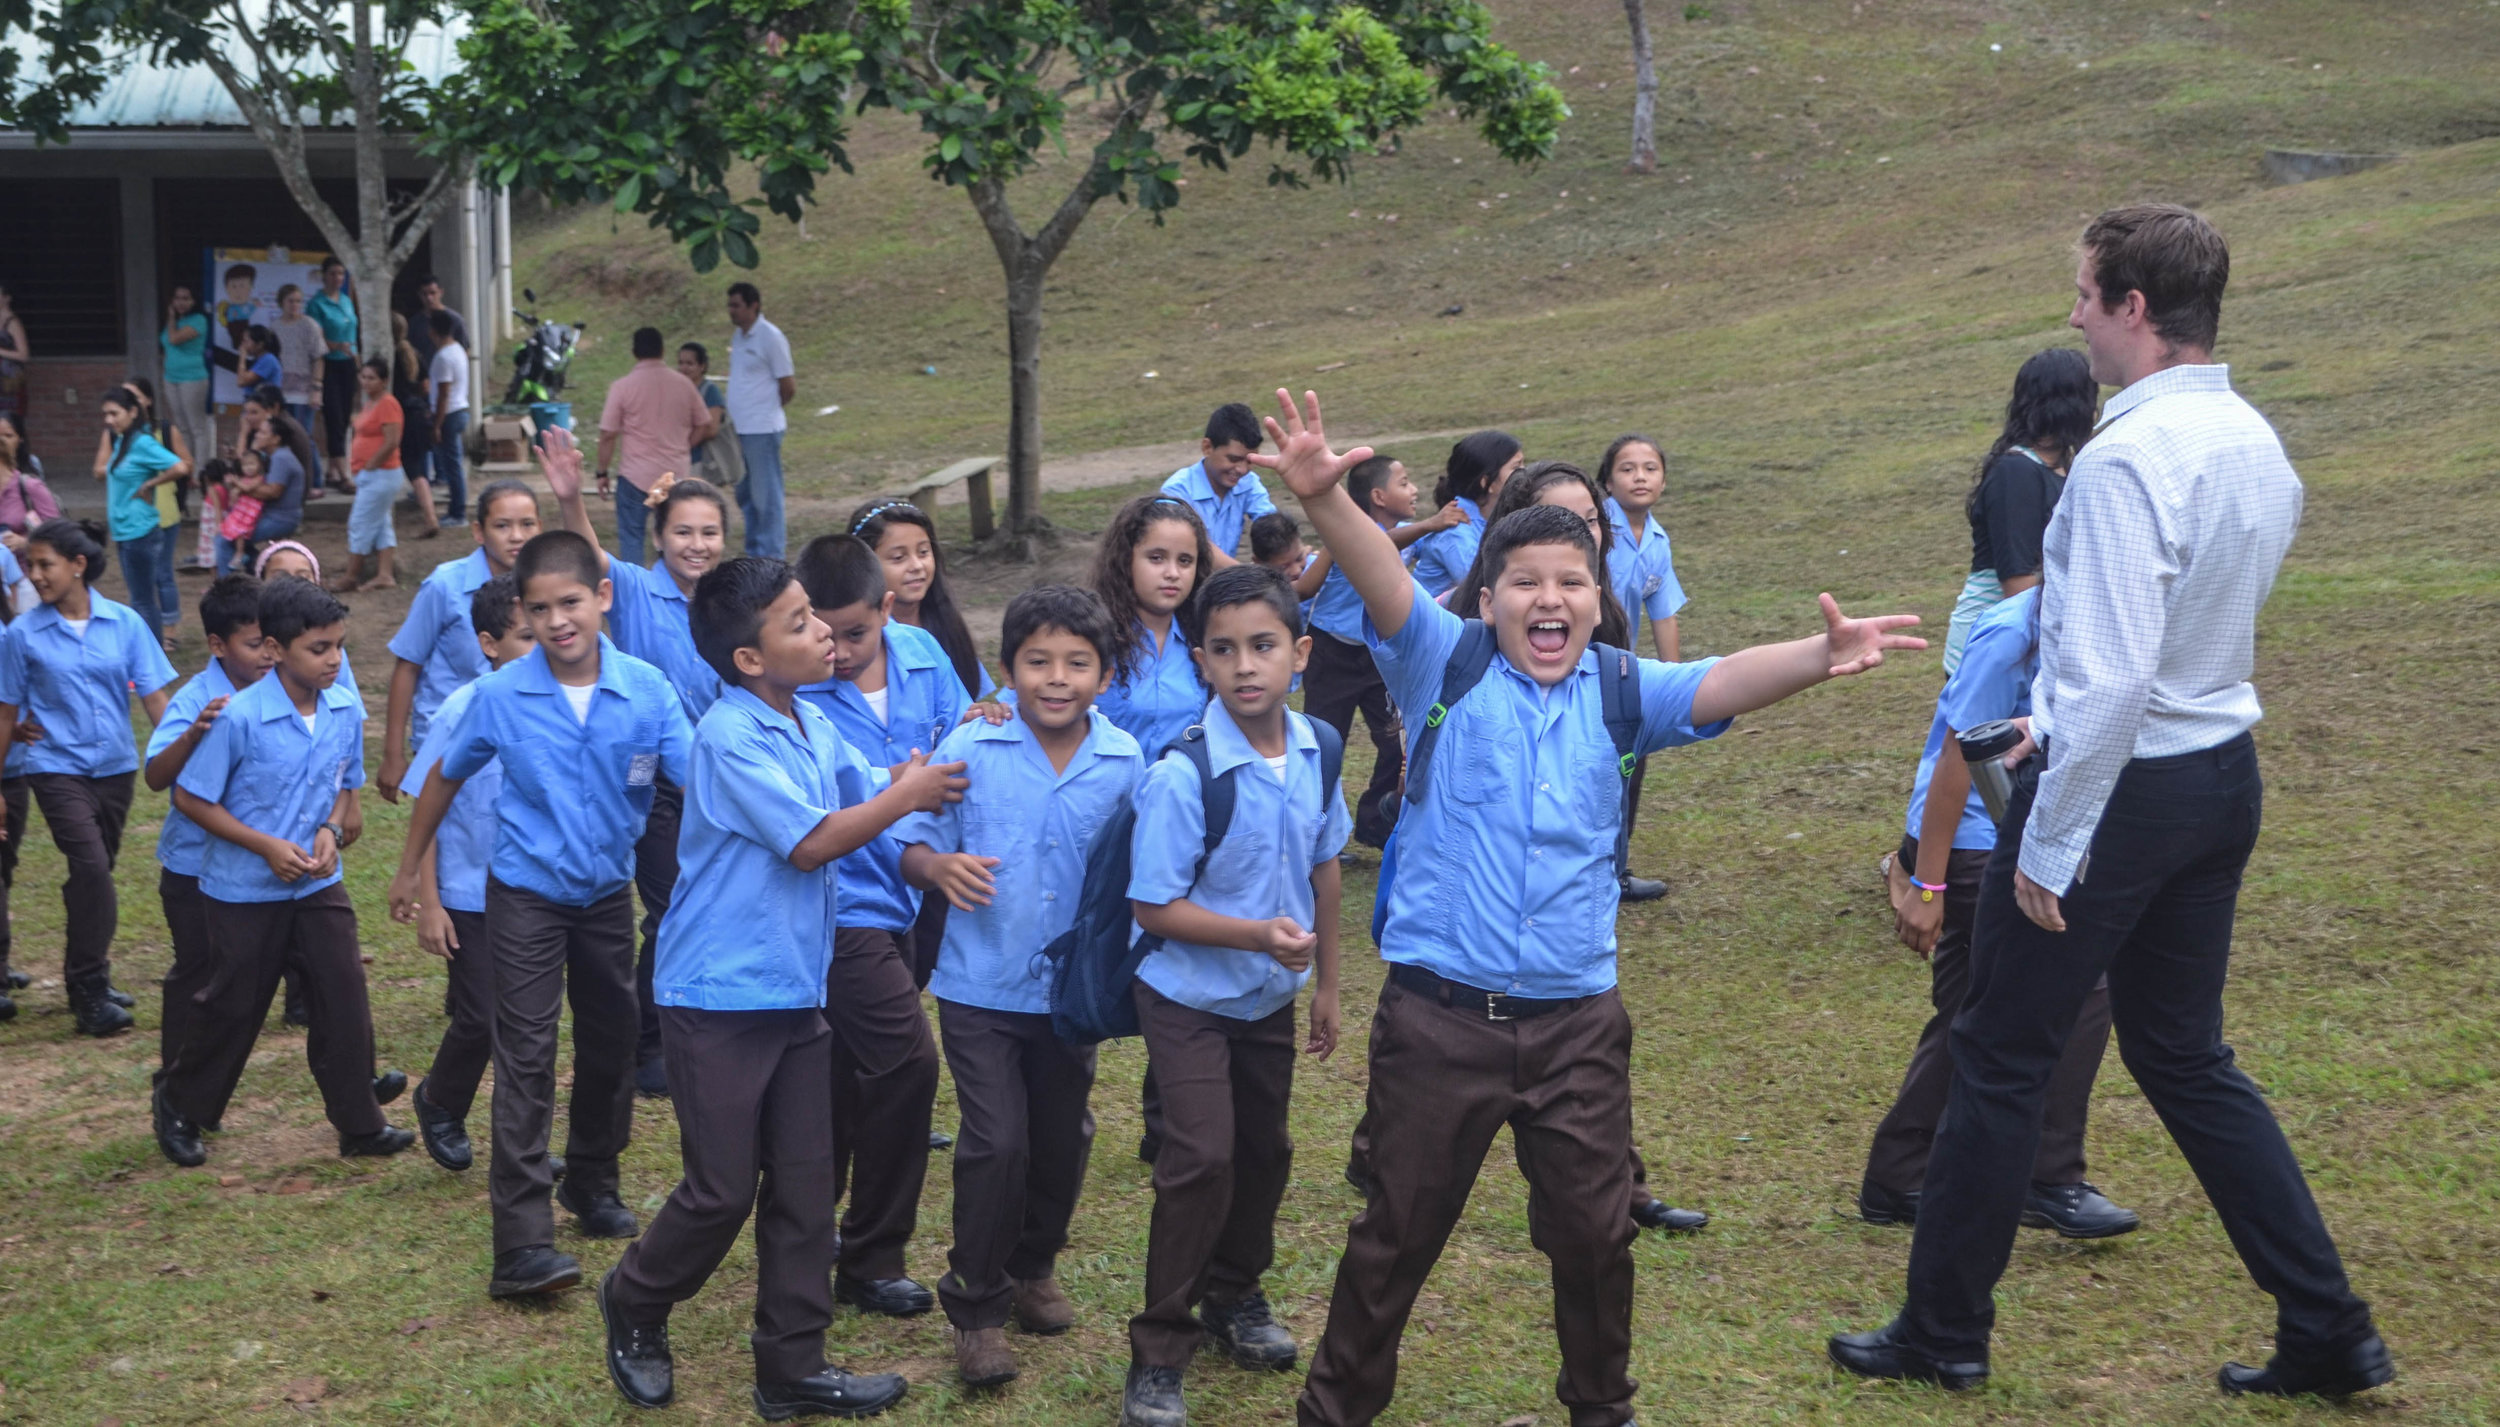 Jason* (third student from right) and classmates on their first day of 5th grade